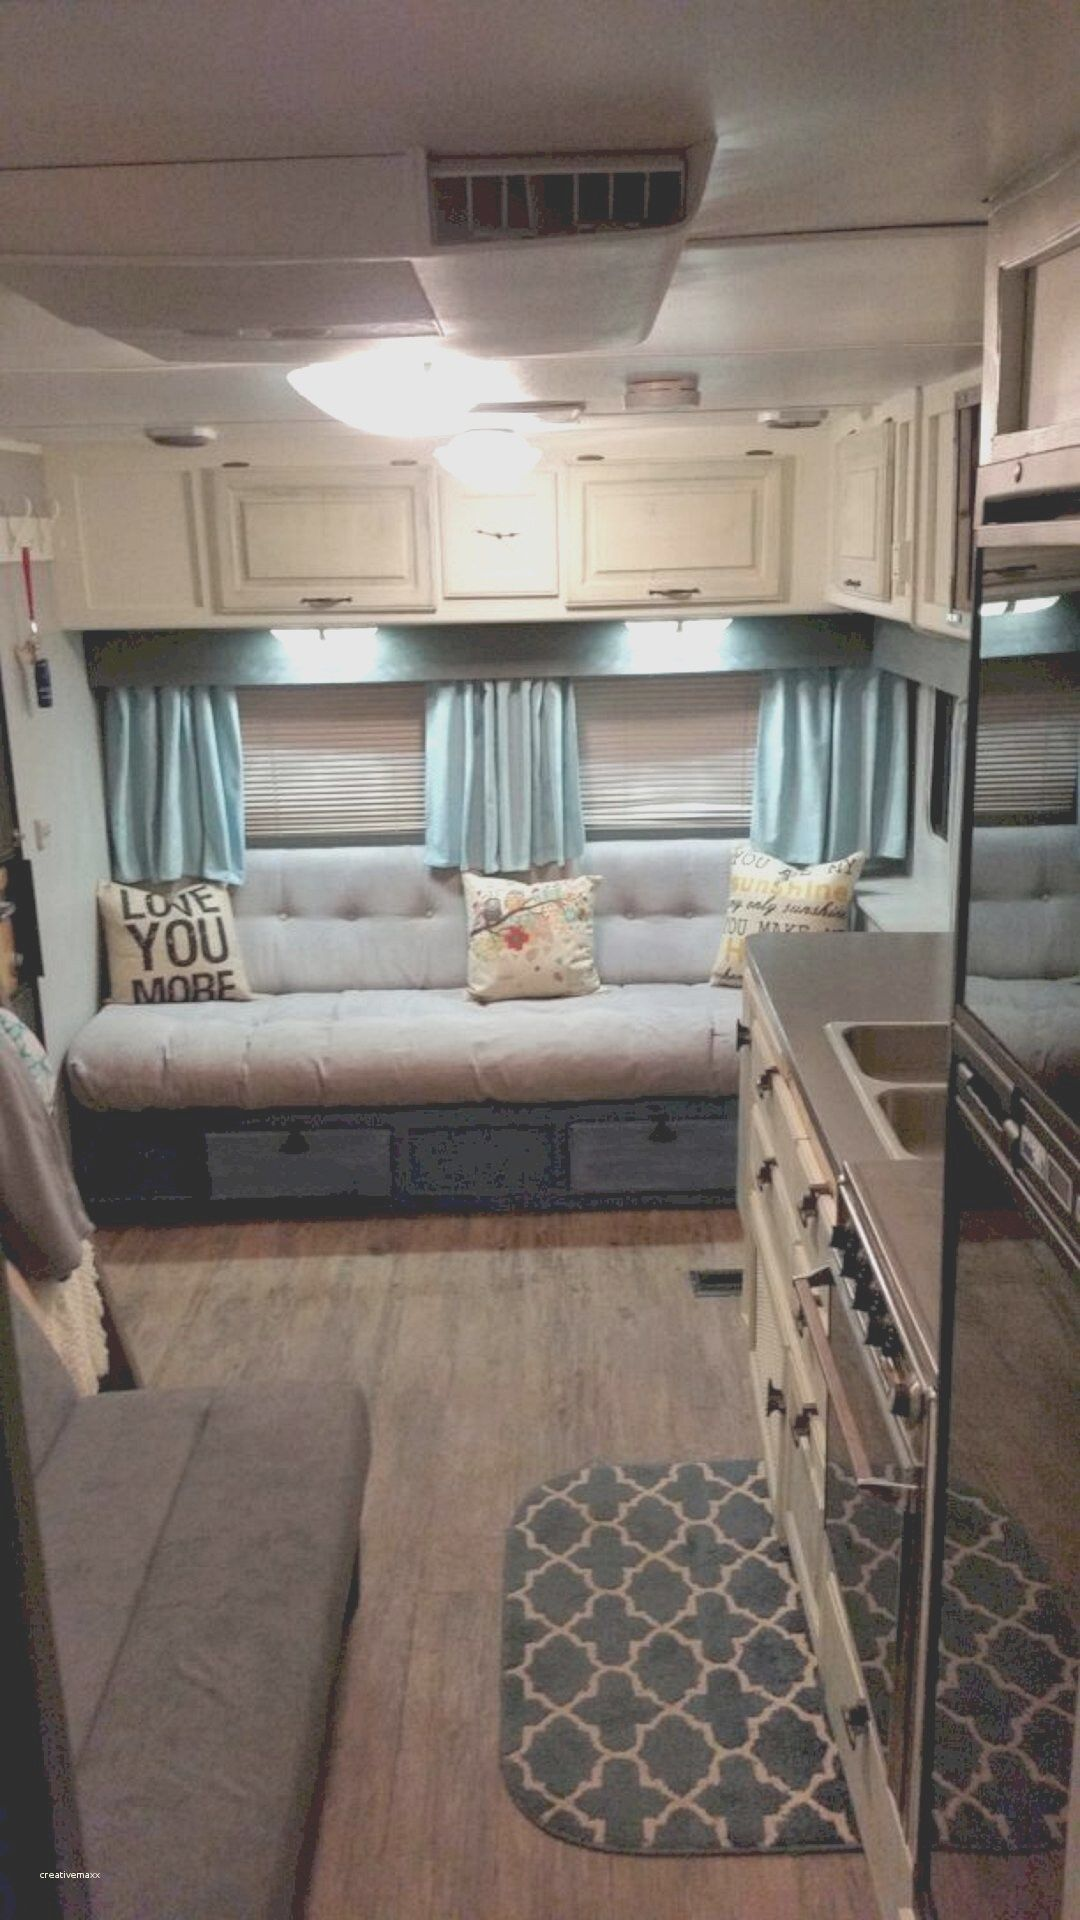 Best 30+ Of Vintage Camper Interior Remodel Ideas | Vintage camper ...